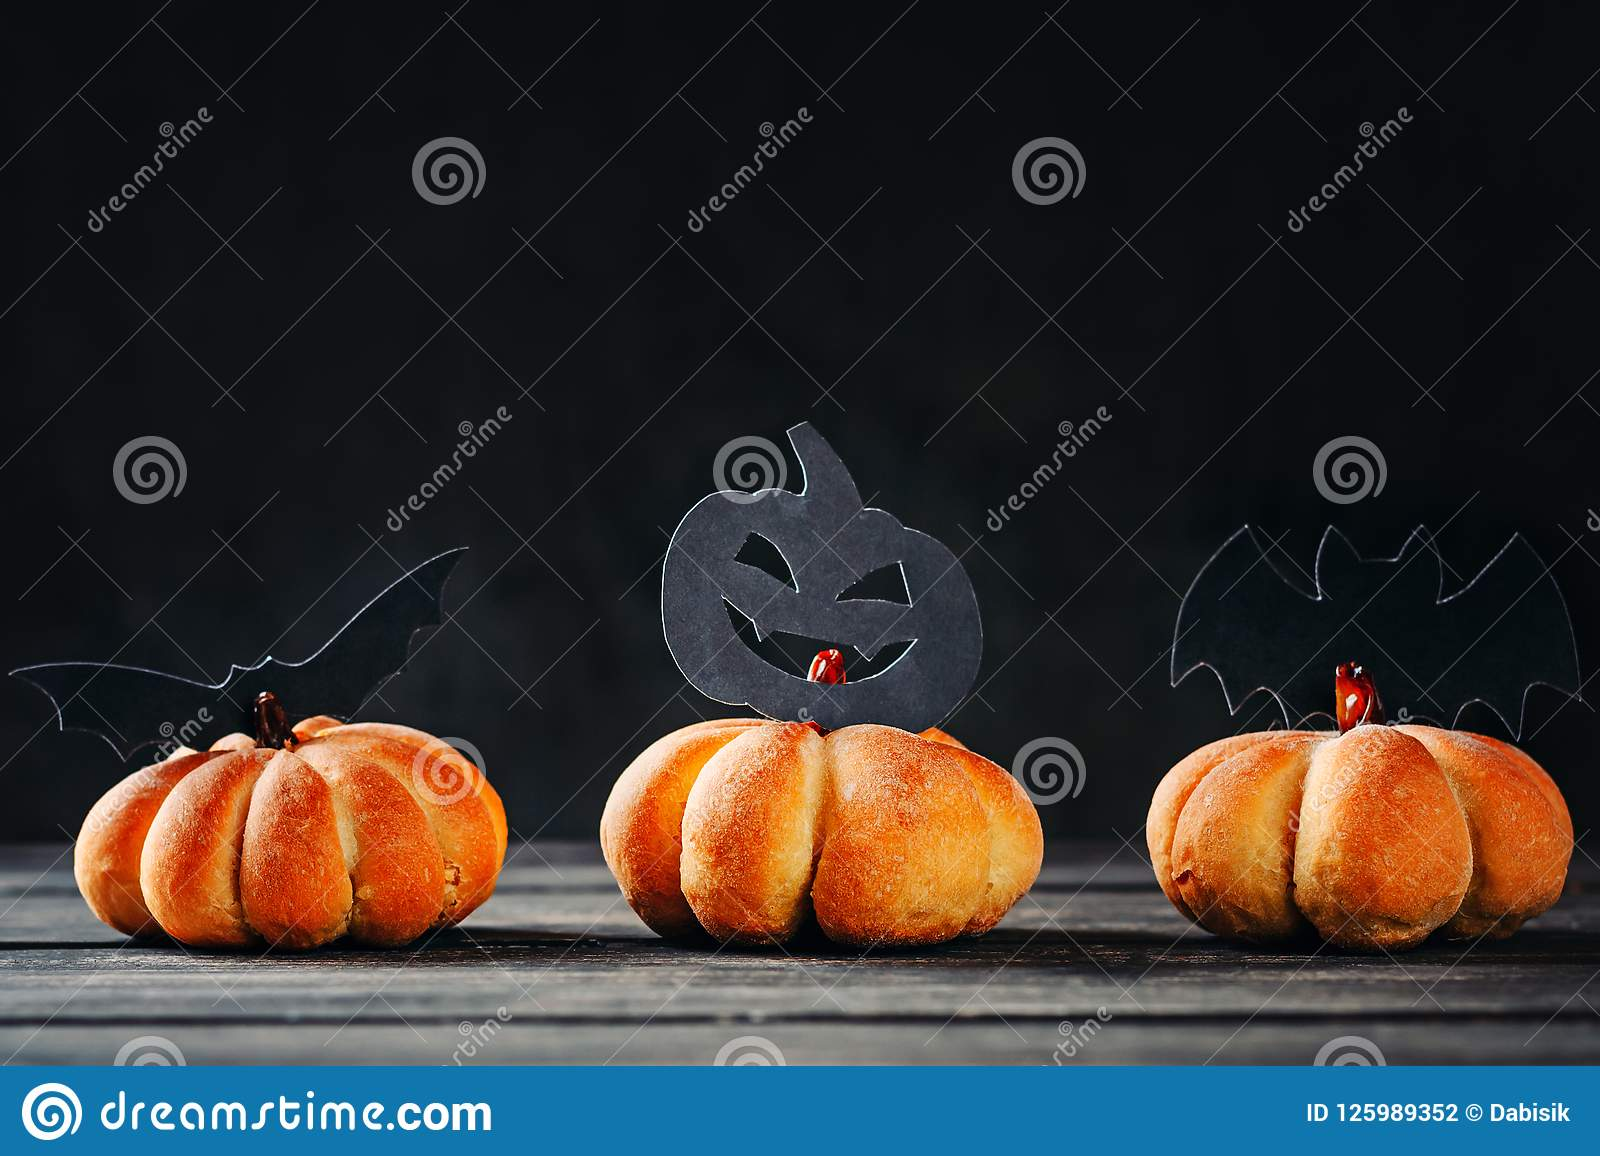 download homemade halloween cakes in the shape of pumpkin on dark background hallooween sweets stock